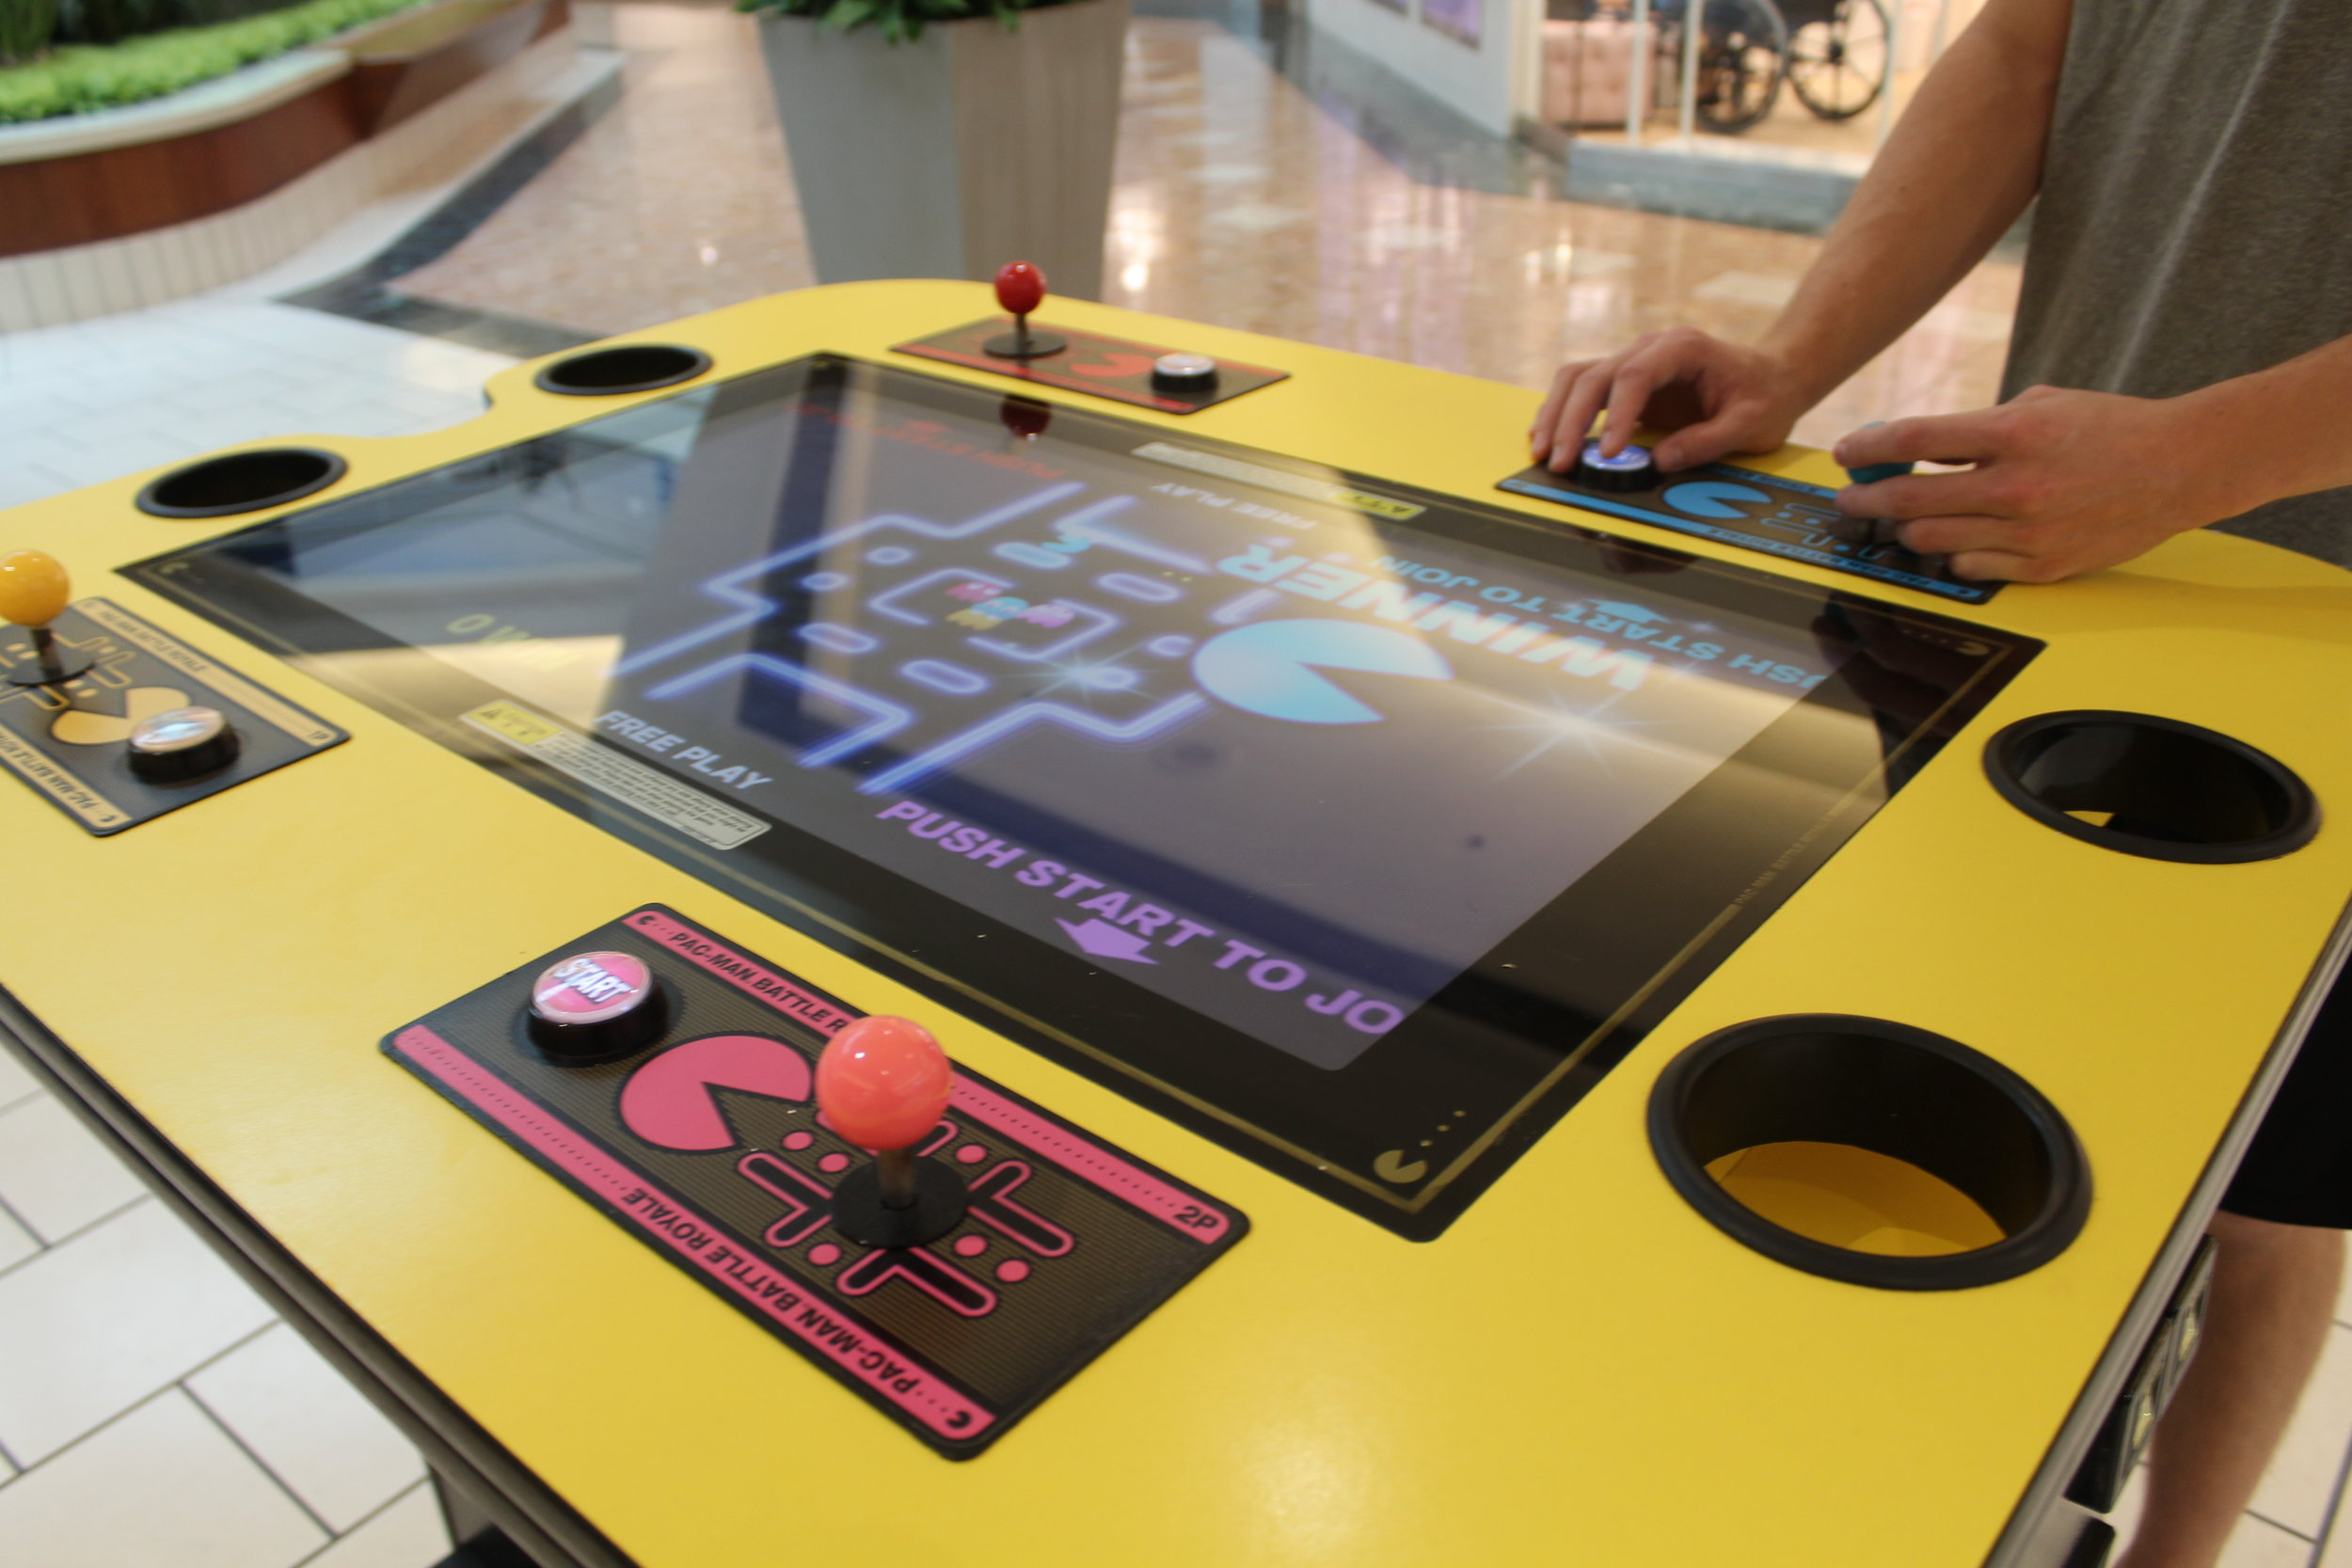 pacman-jupiterbounce-perfectparty-southfloridabounce-tequesta-pbg-northpalm-indiantownroad-33410.JPG